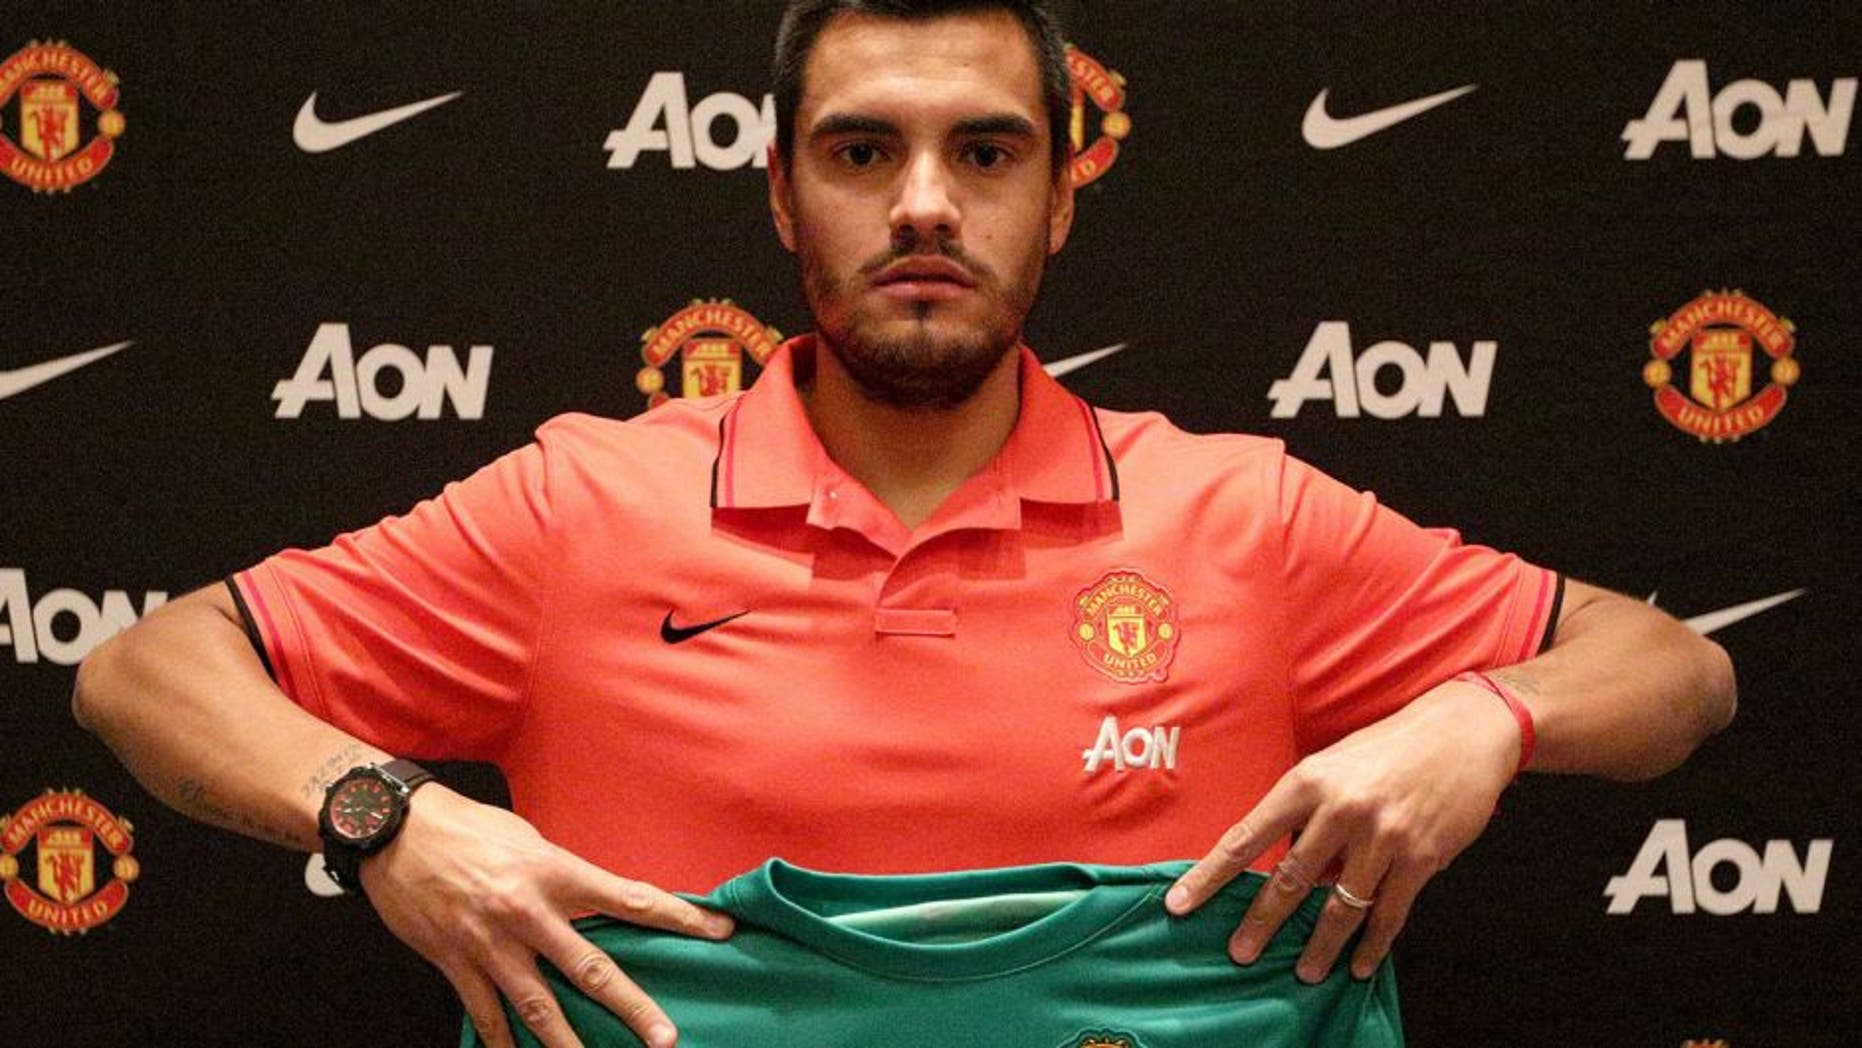 SAN JOSE, CA - JULY 26: (EXCLUSIVE COVERAGE) Sergio Romero of Manchester United poses after signing for the club on July 26, 2015 in San Jose, California. (Photo by Tom Purslow/Man Utd via Getty Images)